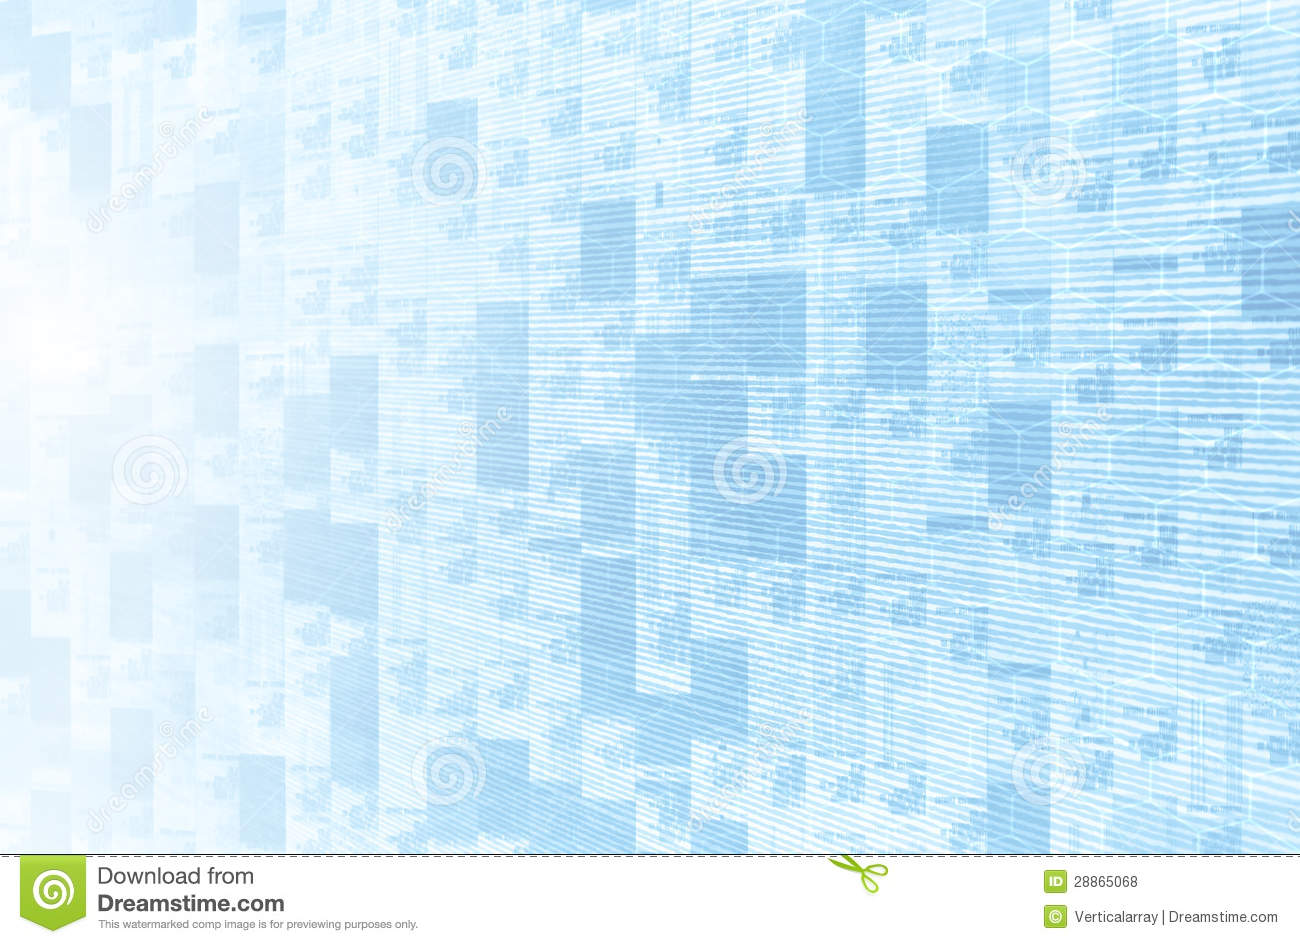 Stock Simulation Algorithm Big Data Royalty Free Stock Photos Image 28865068